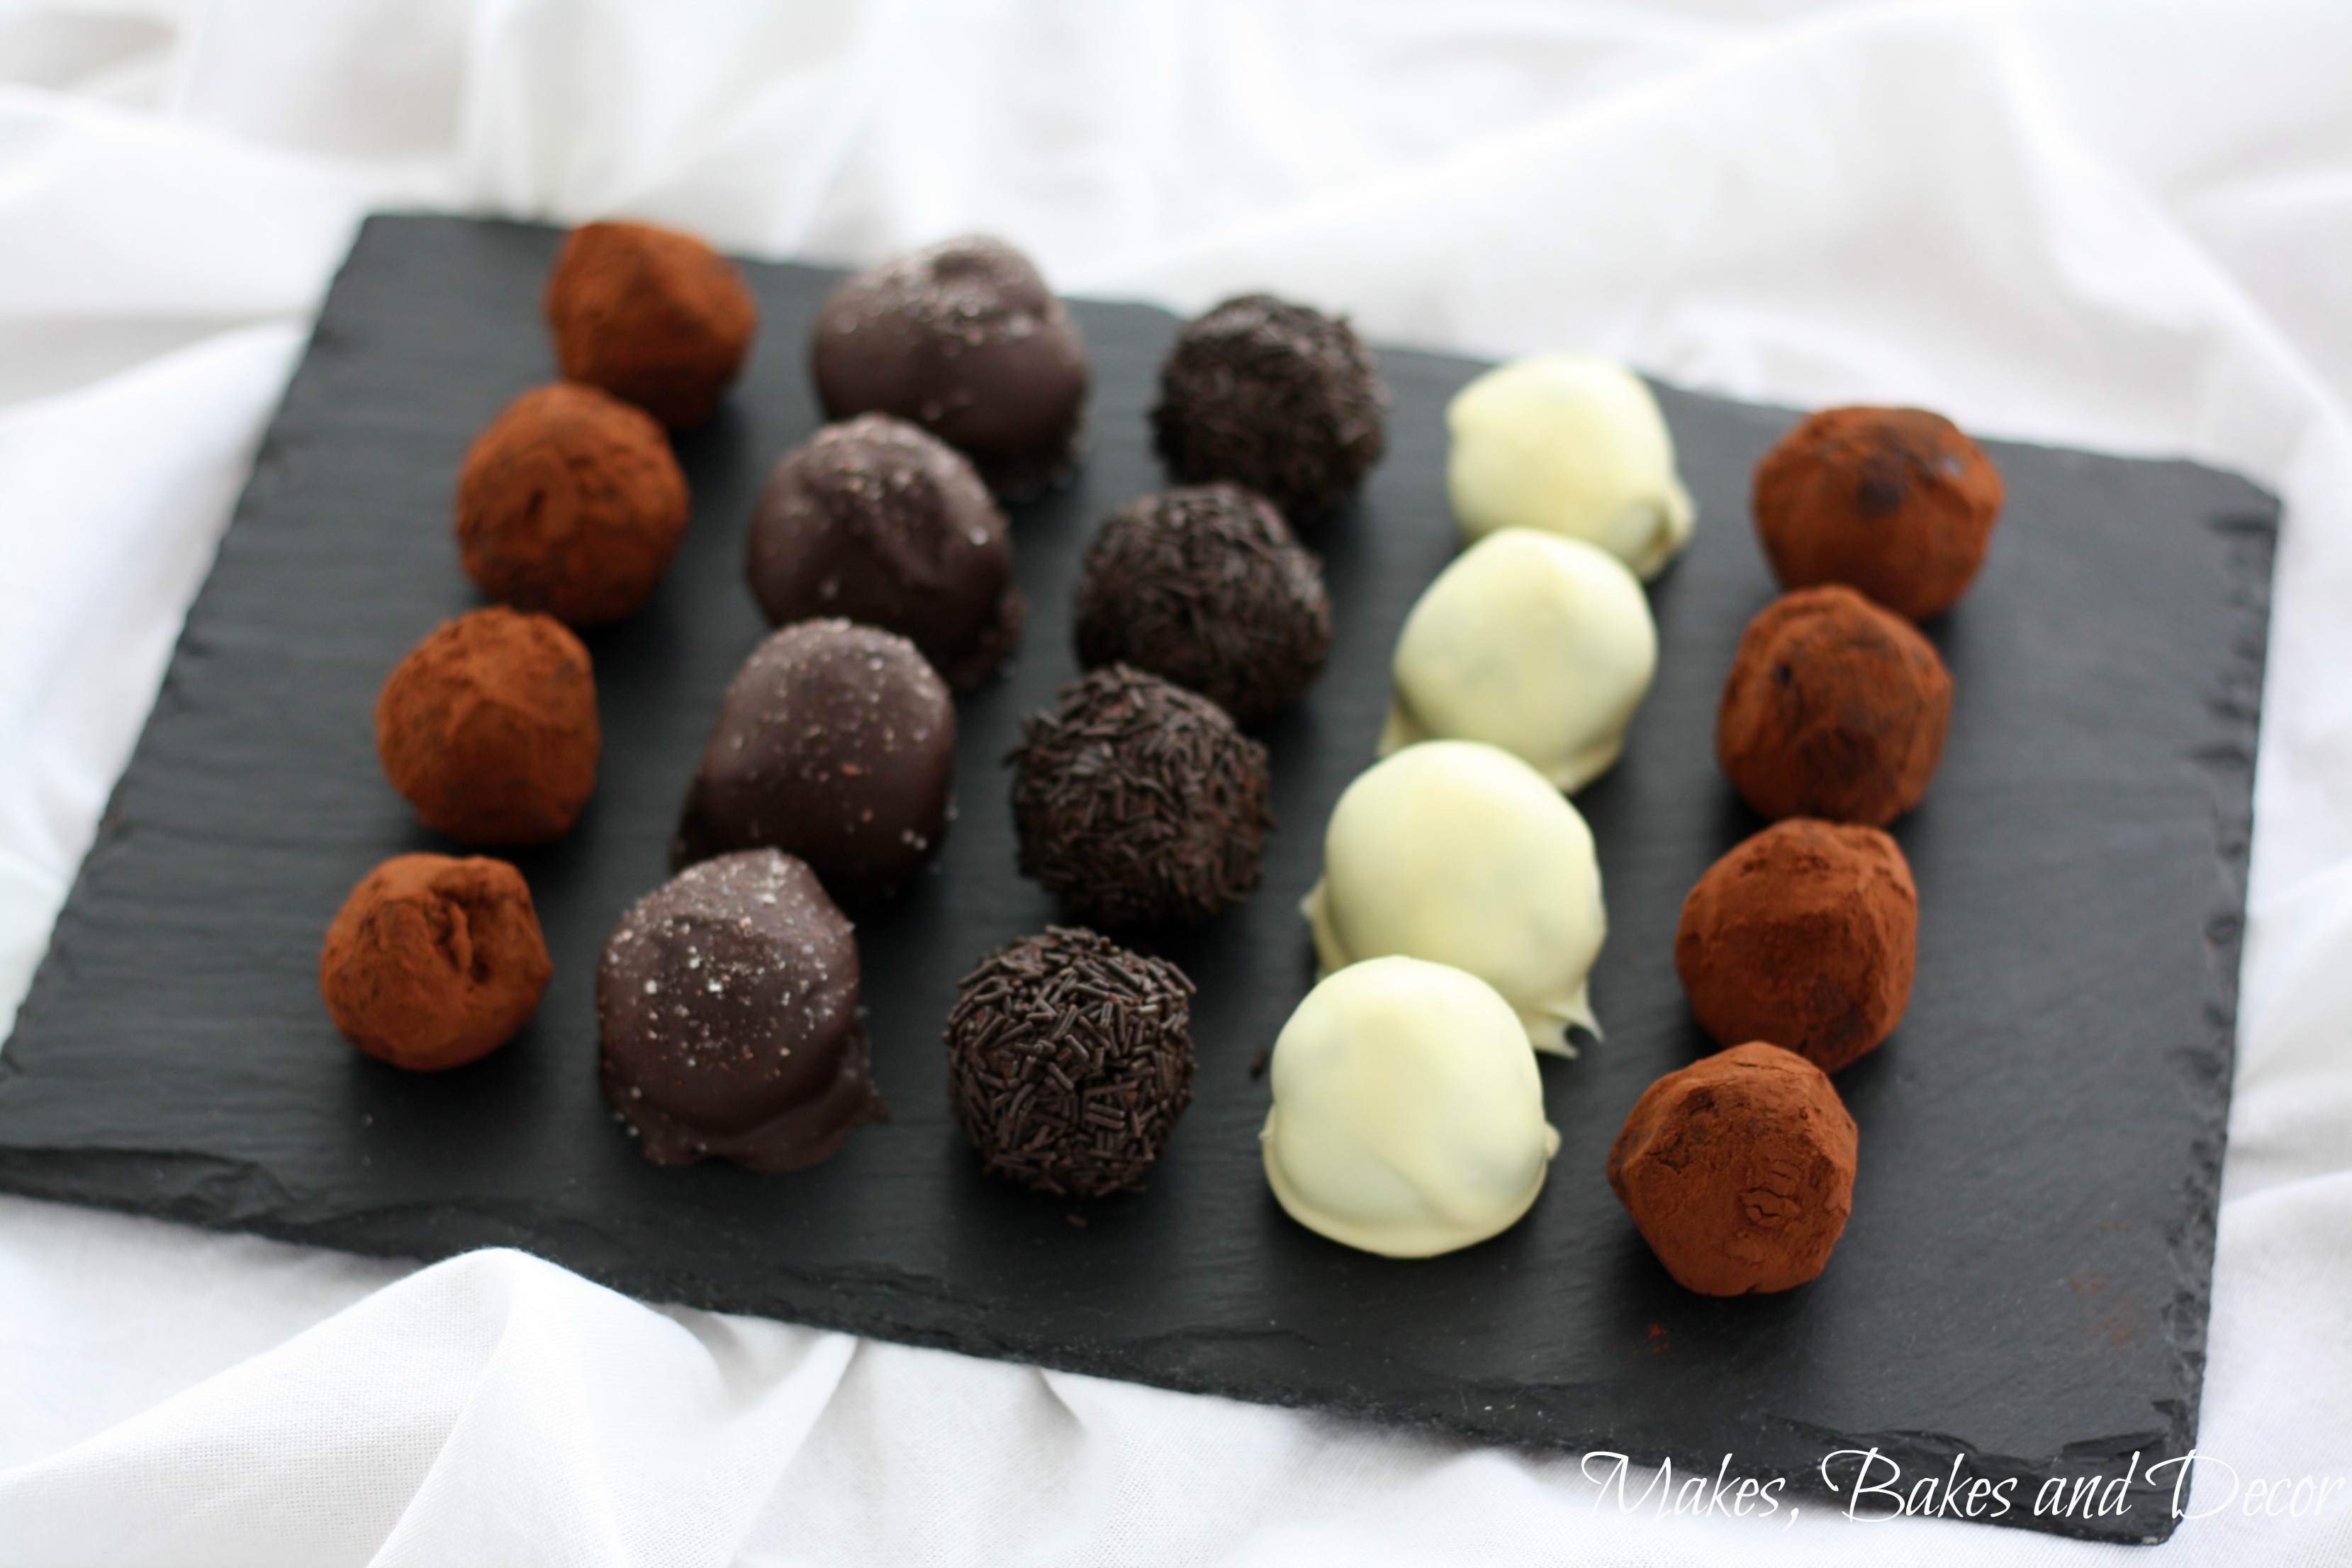 Chocolate Truffles with a difference